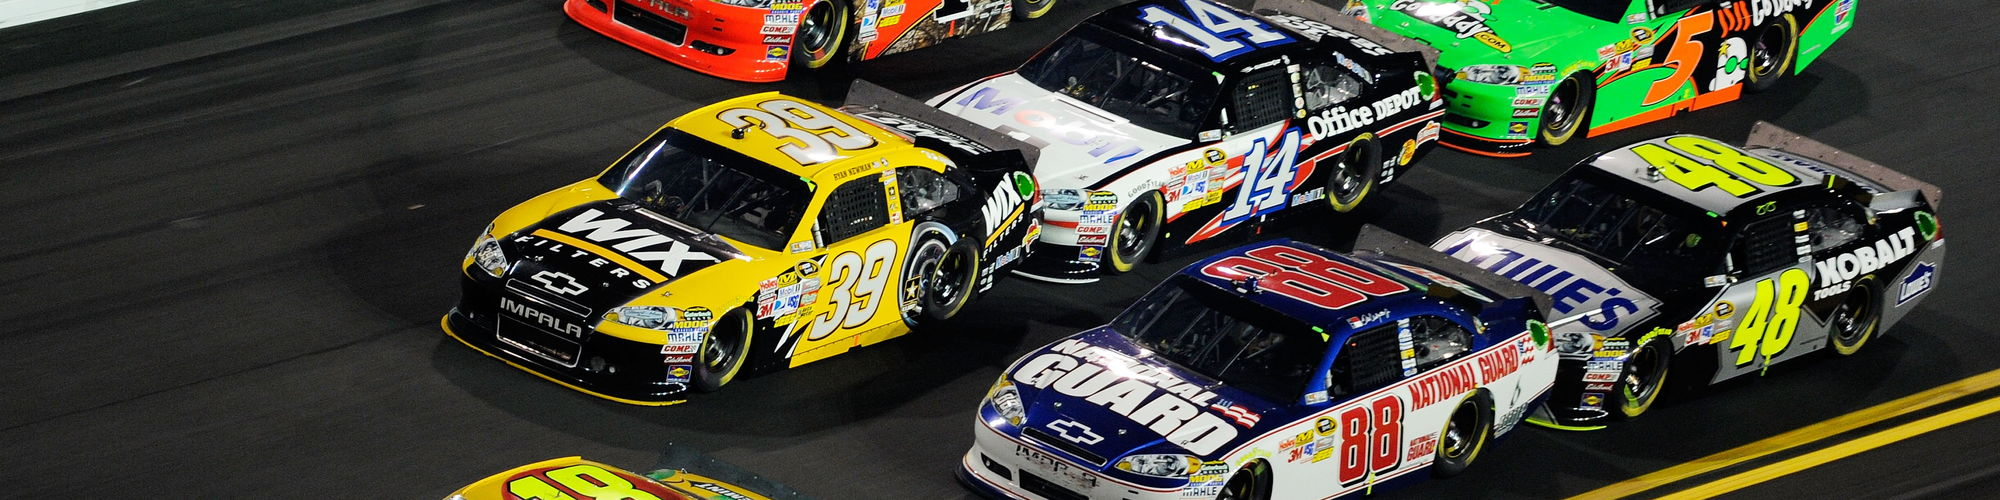 NASCAR cover image